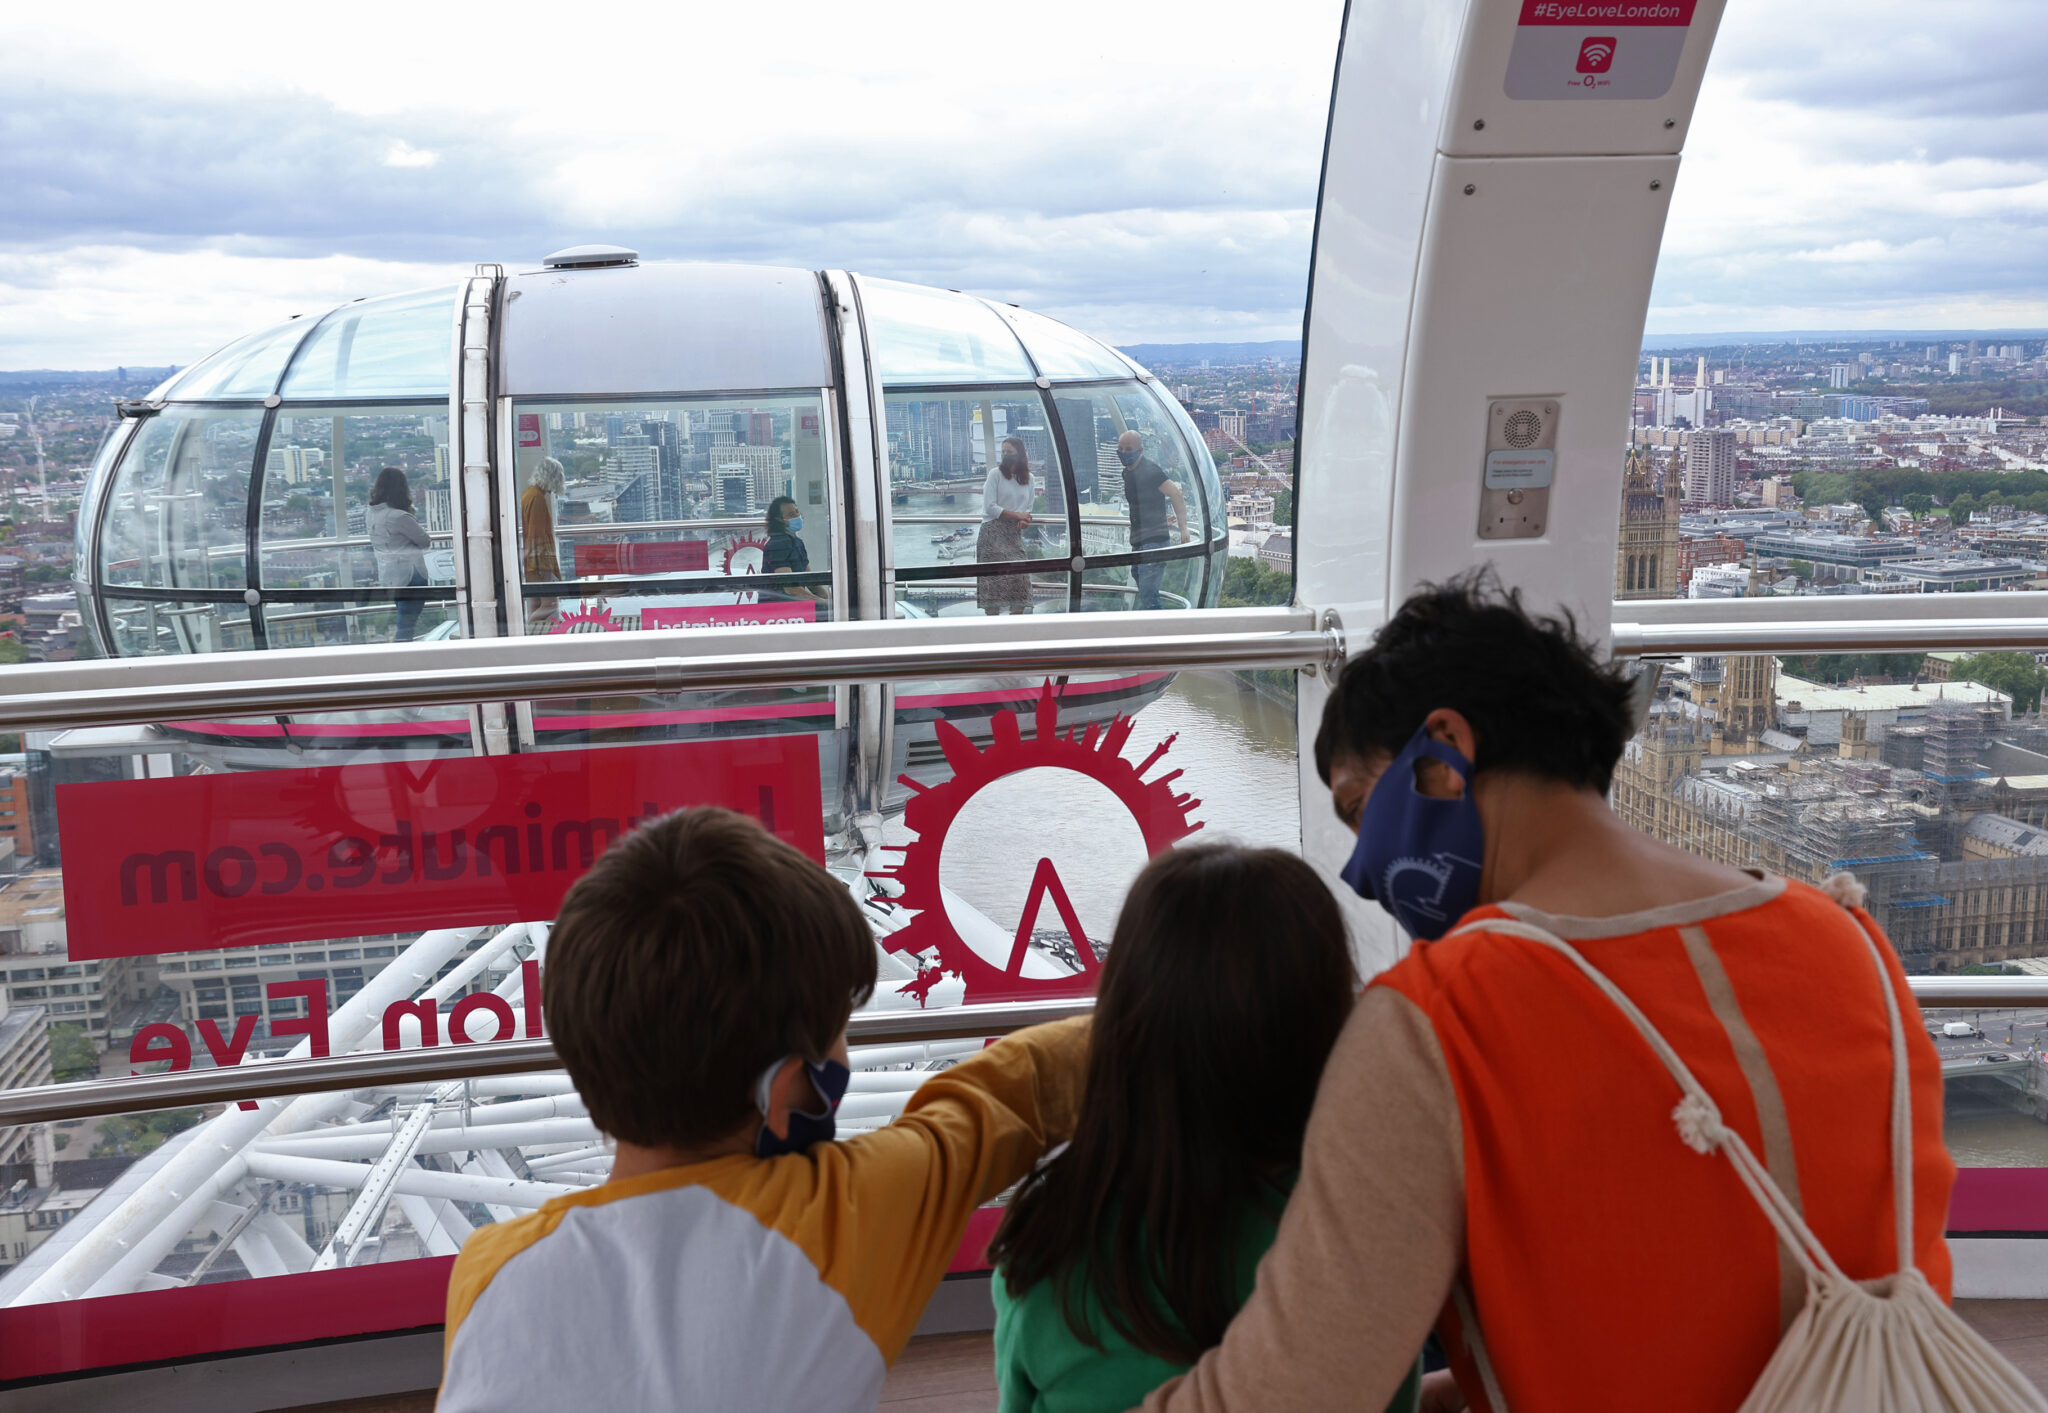 Merlin Entertainments, London Eye